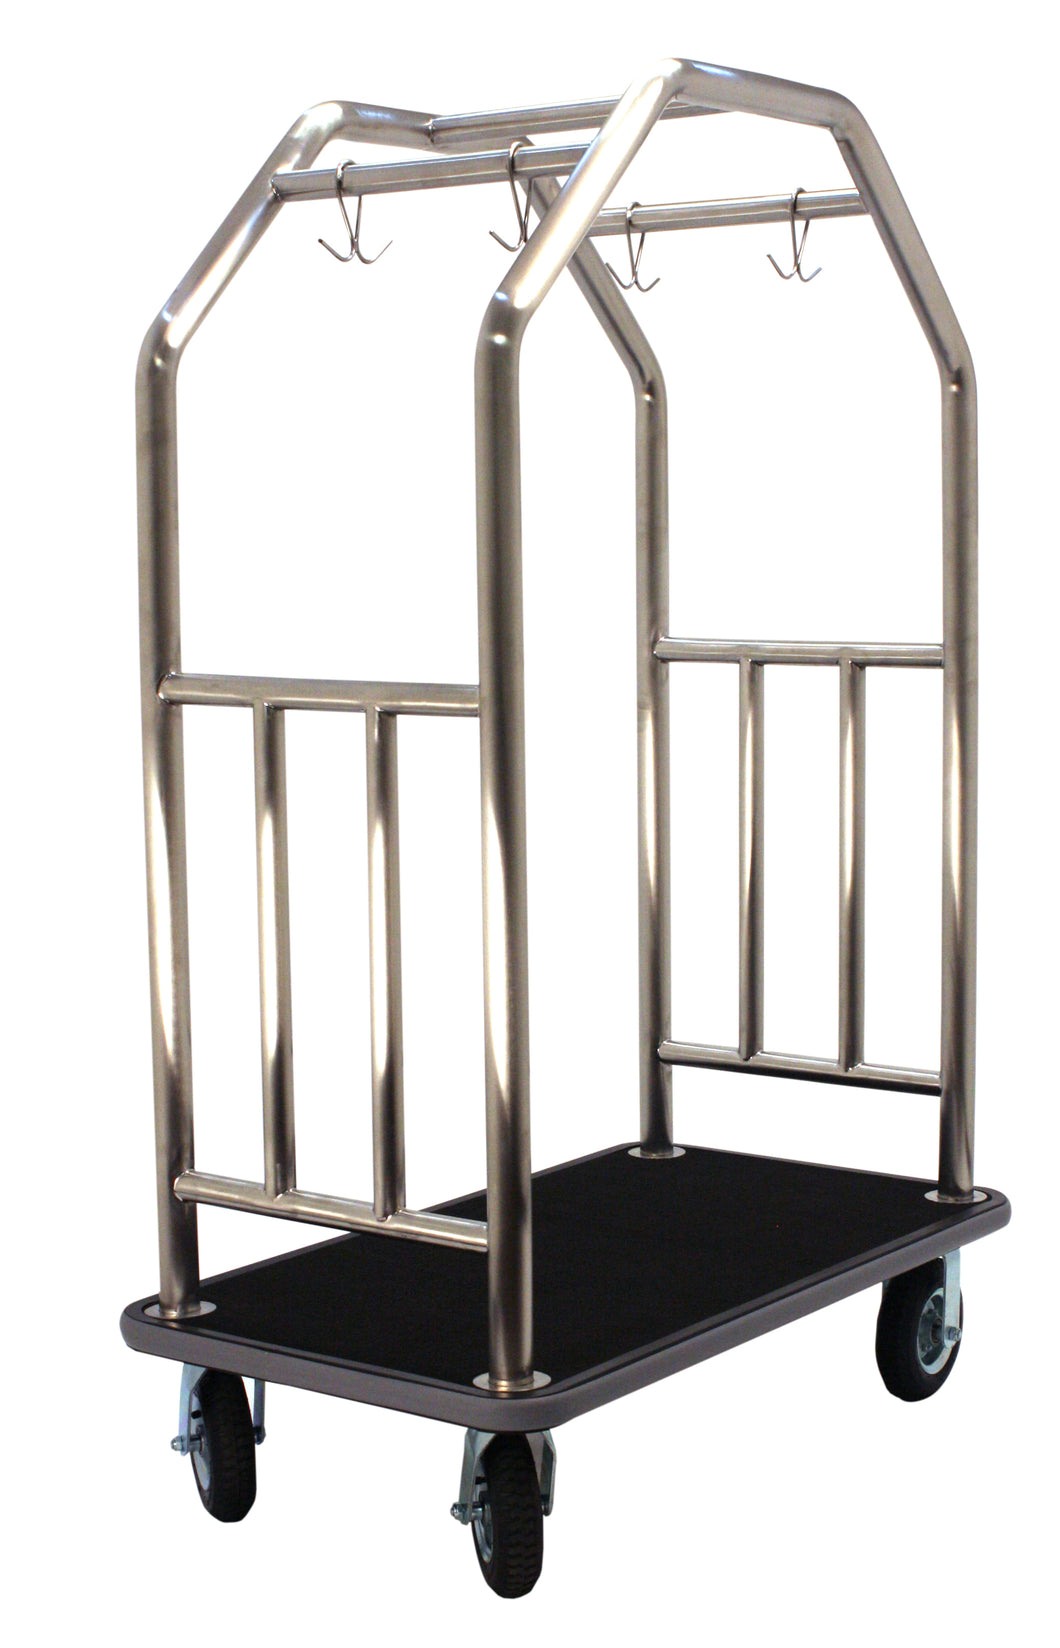 H1S Estate Series Bellman's Cart - Brushed Stainless Steel